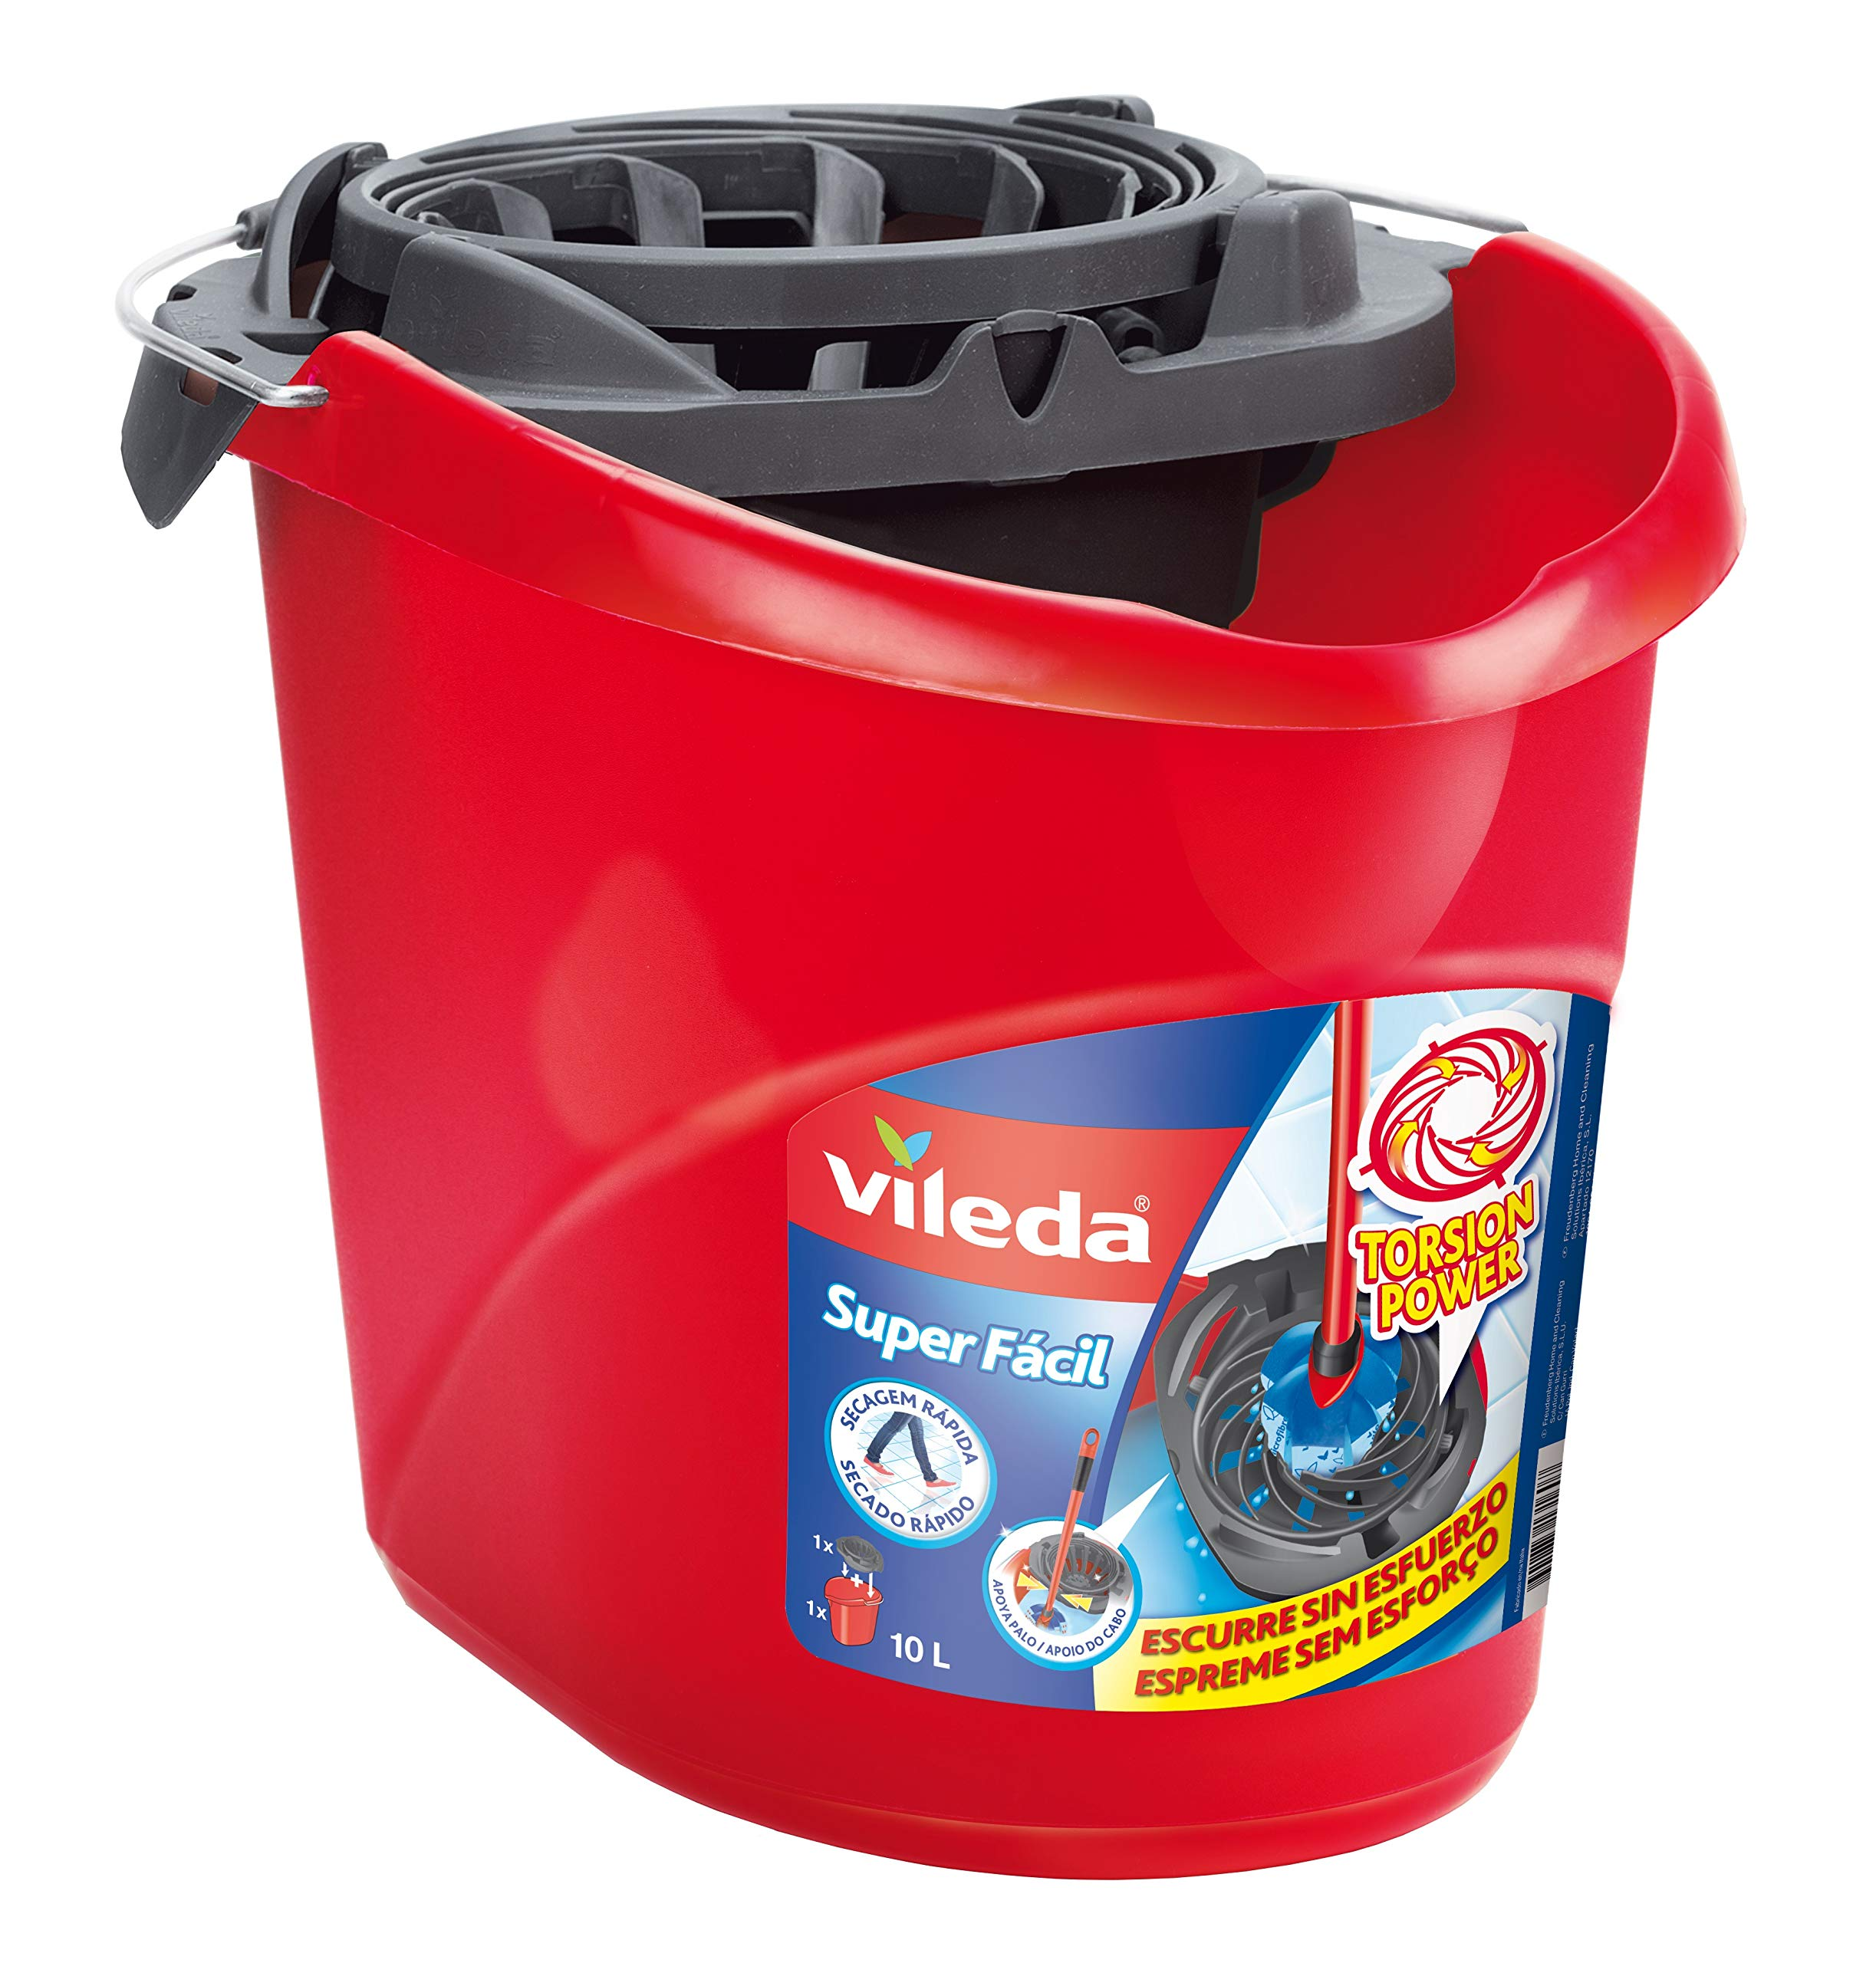 Vileda Torsion Power - Cubo superfácil, menos esfuerzo a la hora de escurrir, color